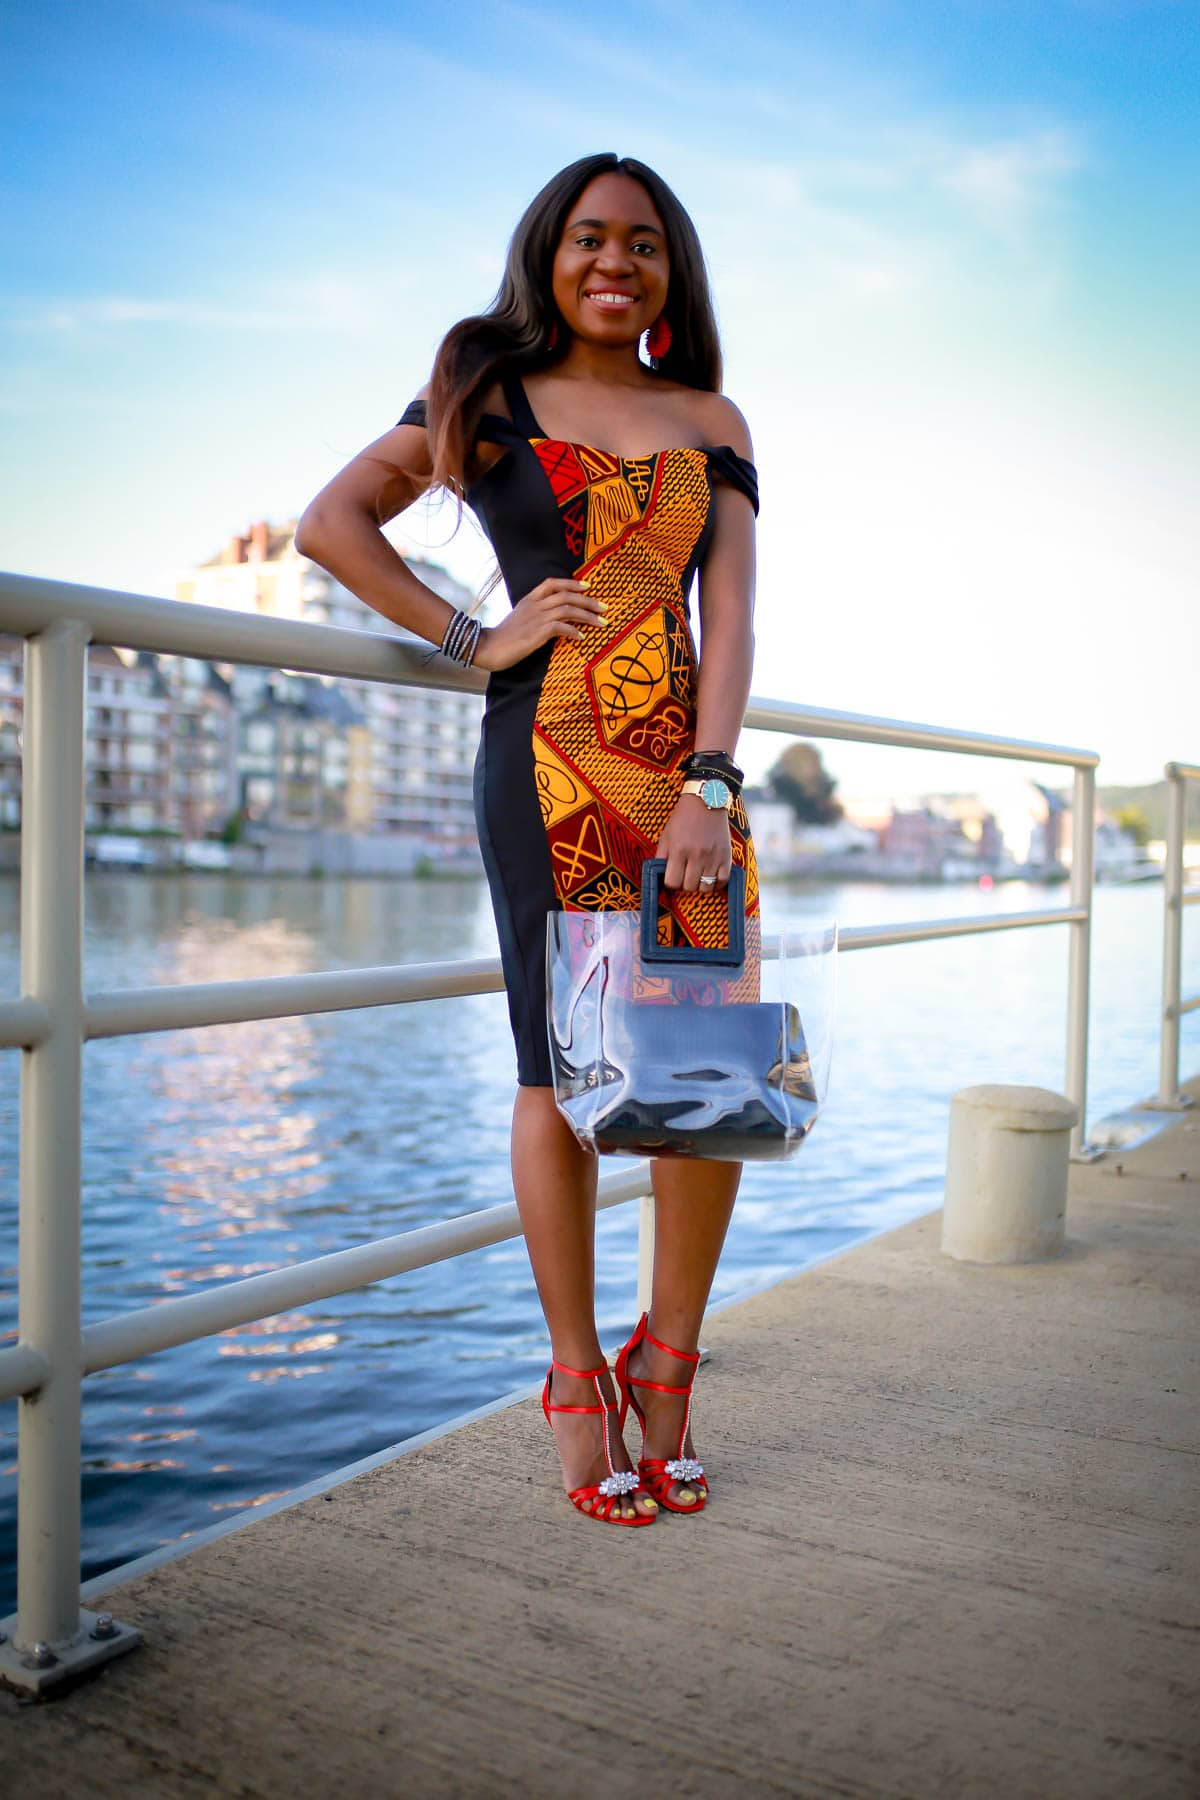 #africanwedding #ankarastyles Totally crushing on this African print sheath dress that is perfect for special events like weddings, birthday parties and more. African fashion lover, Louisa, shares this stunning ankara dress and where to find a similar style. #africanfashion